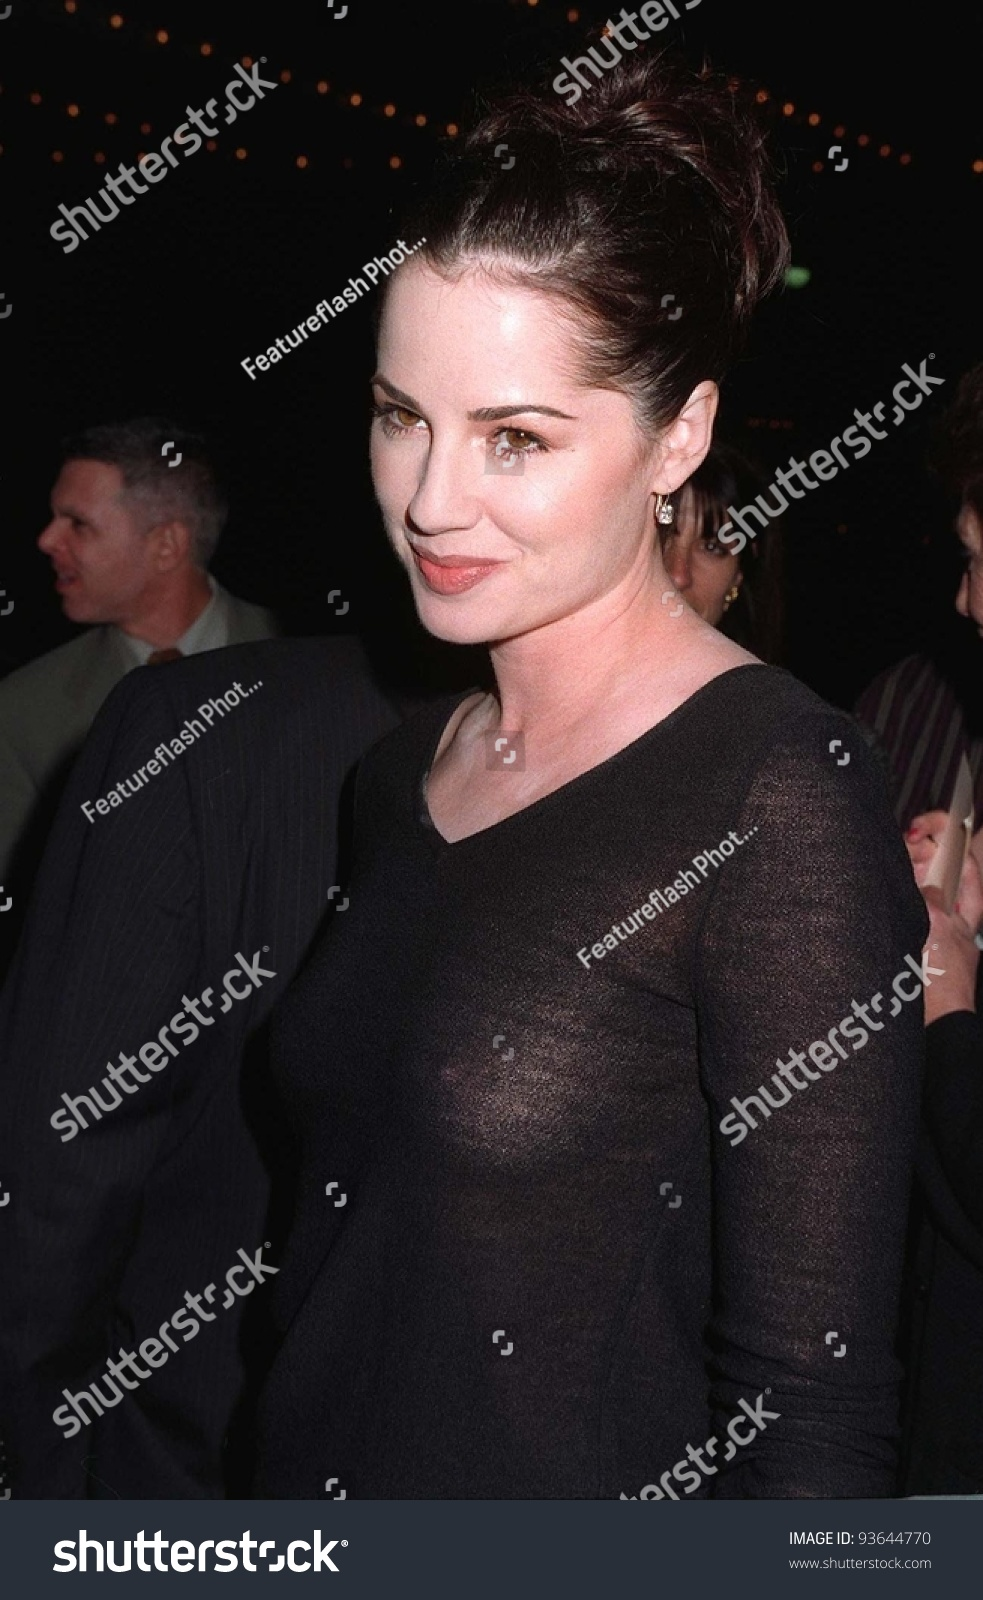 Discussion on this topic: Meghan Ory, elise-crombez-bel-2-2006-2007/